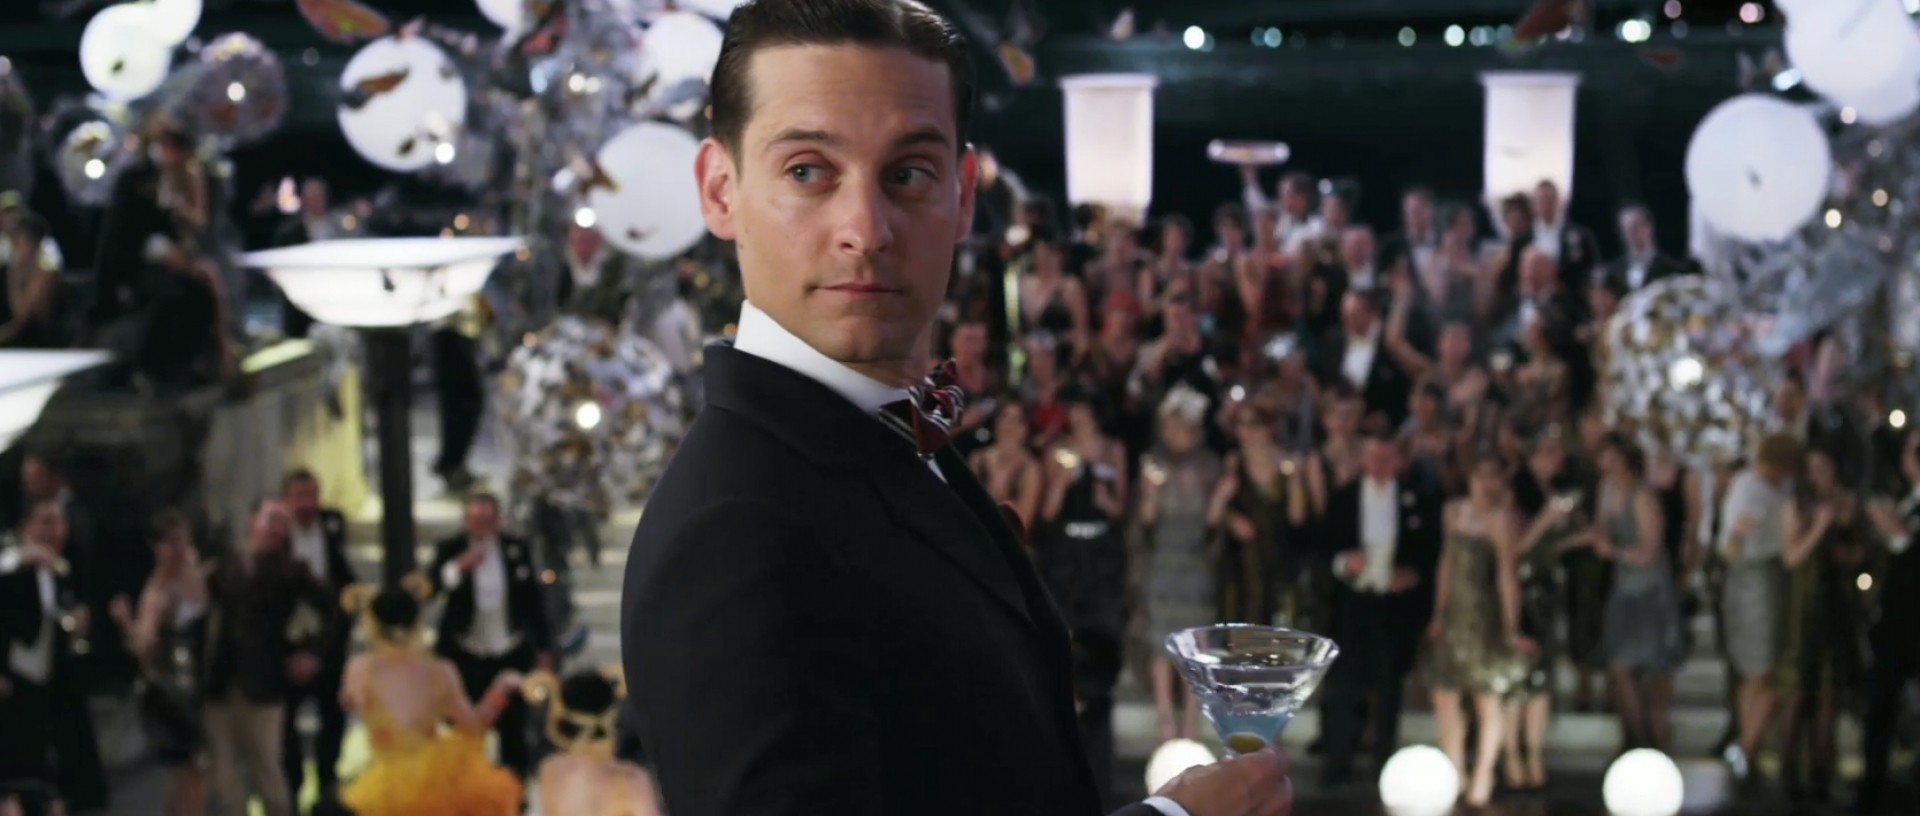 Quelle: http://www.blunderbussmag.com/wp-content/uploads/2013/05/tobey-maguire-as-nick-carraway-in-the-great.jpg